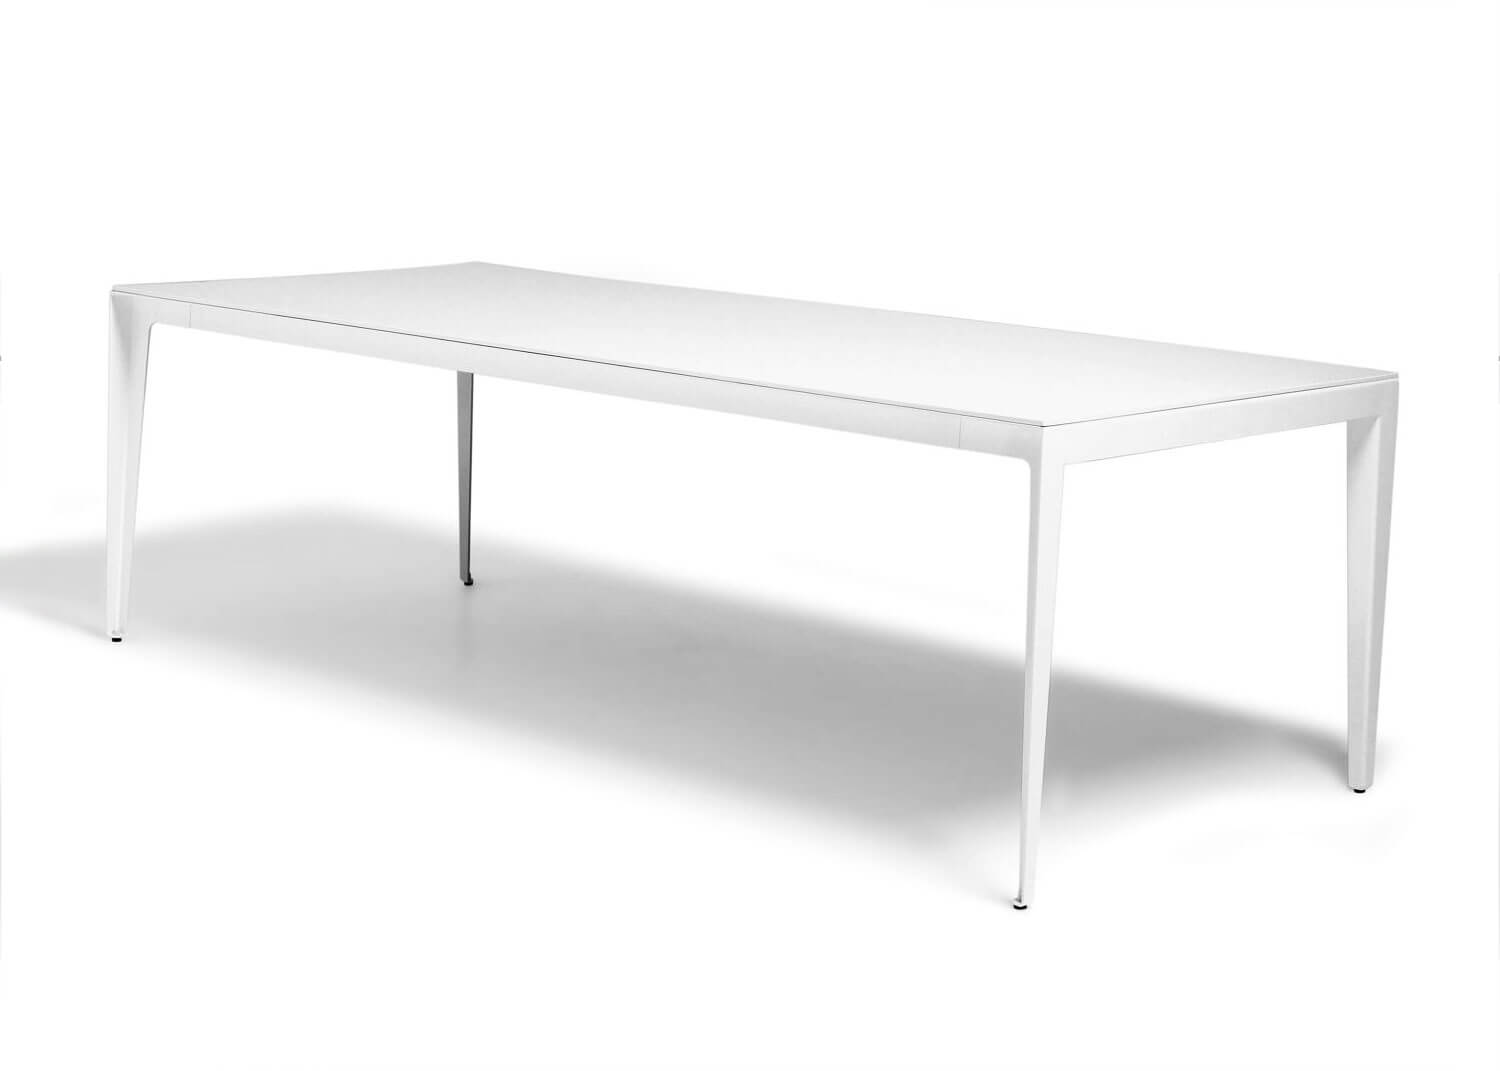 Outline-conference-table2_tinyjpg.jpg